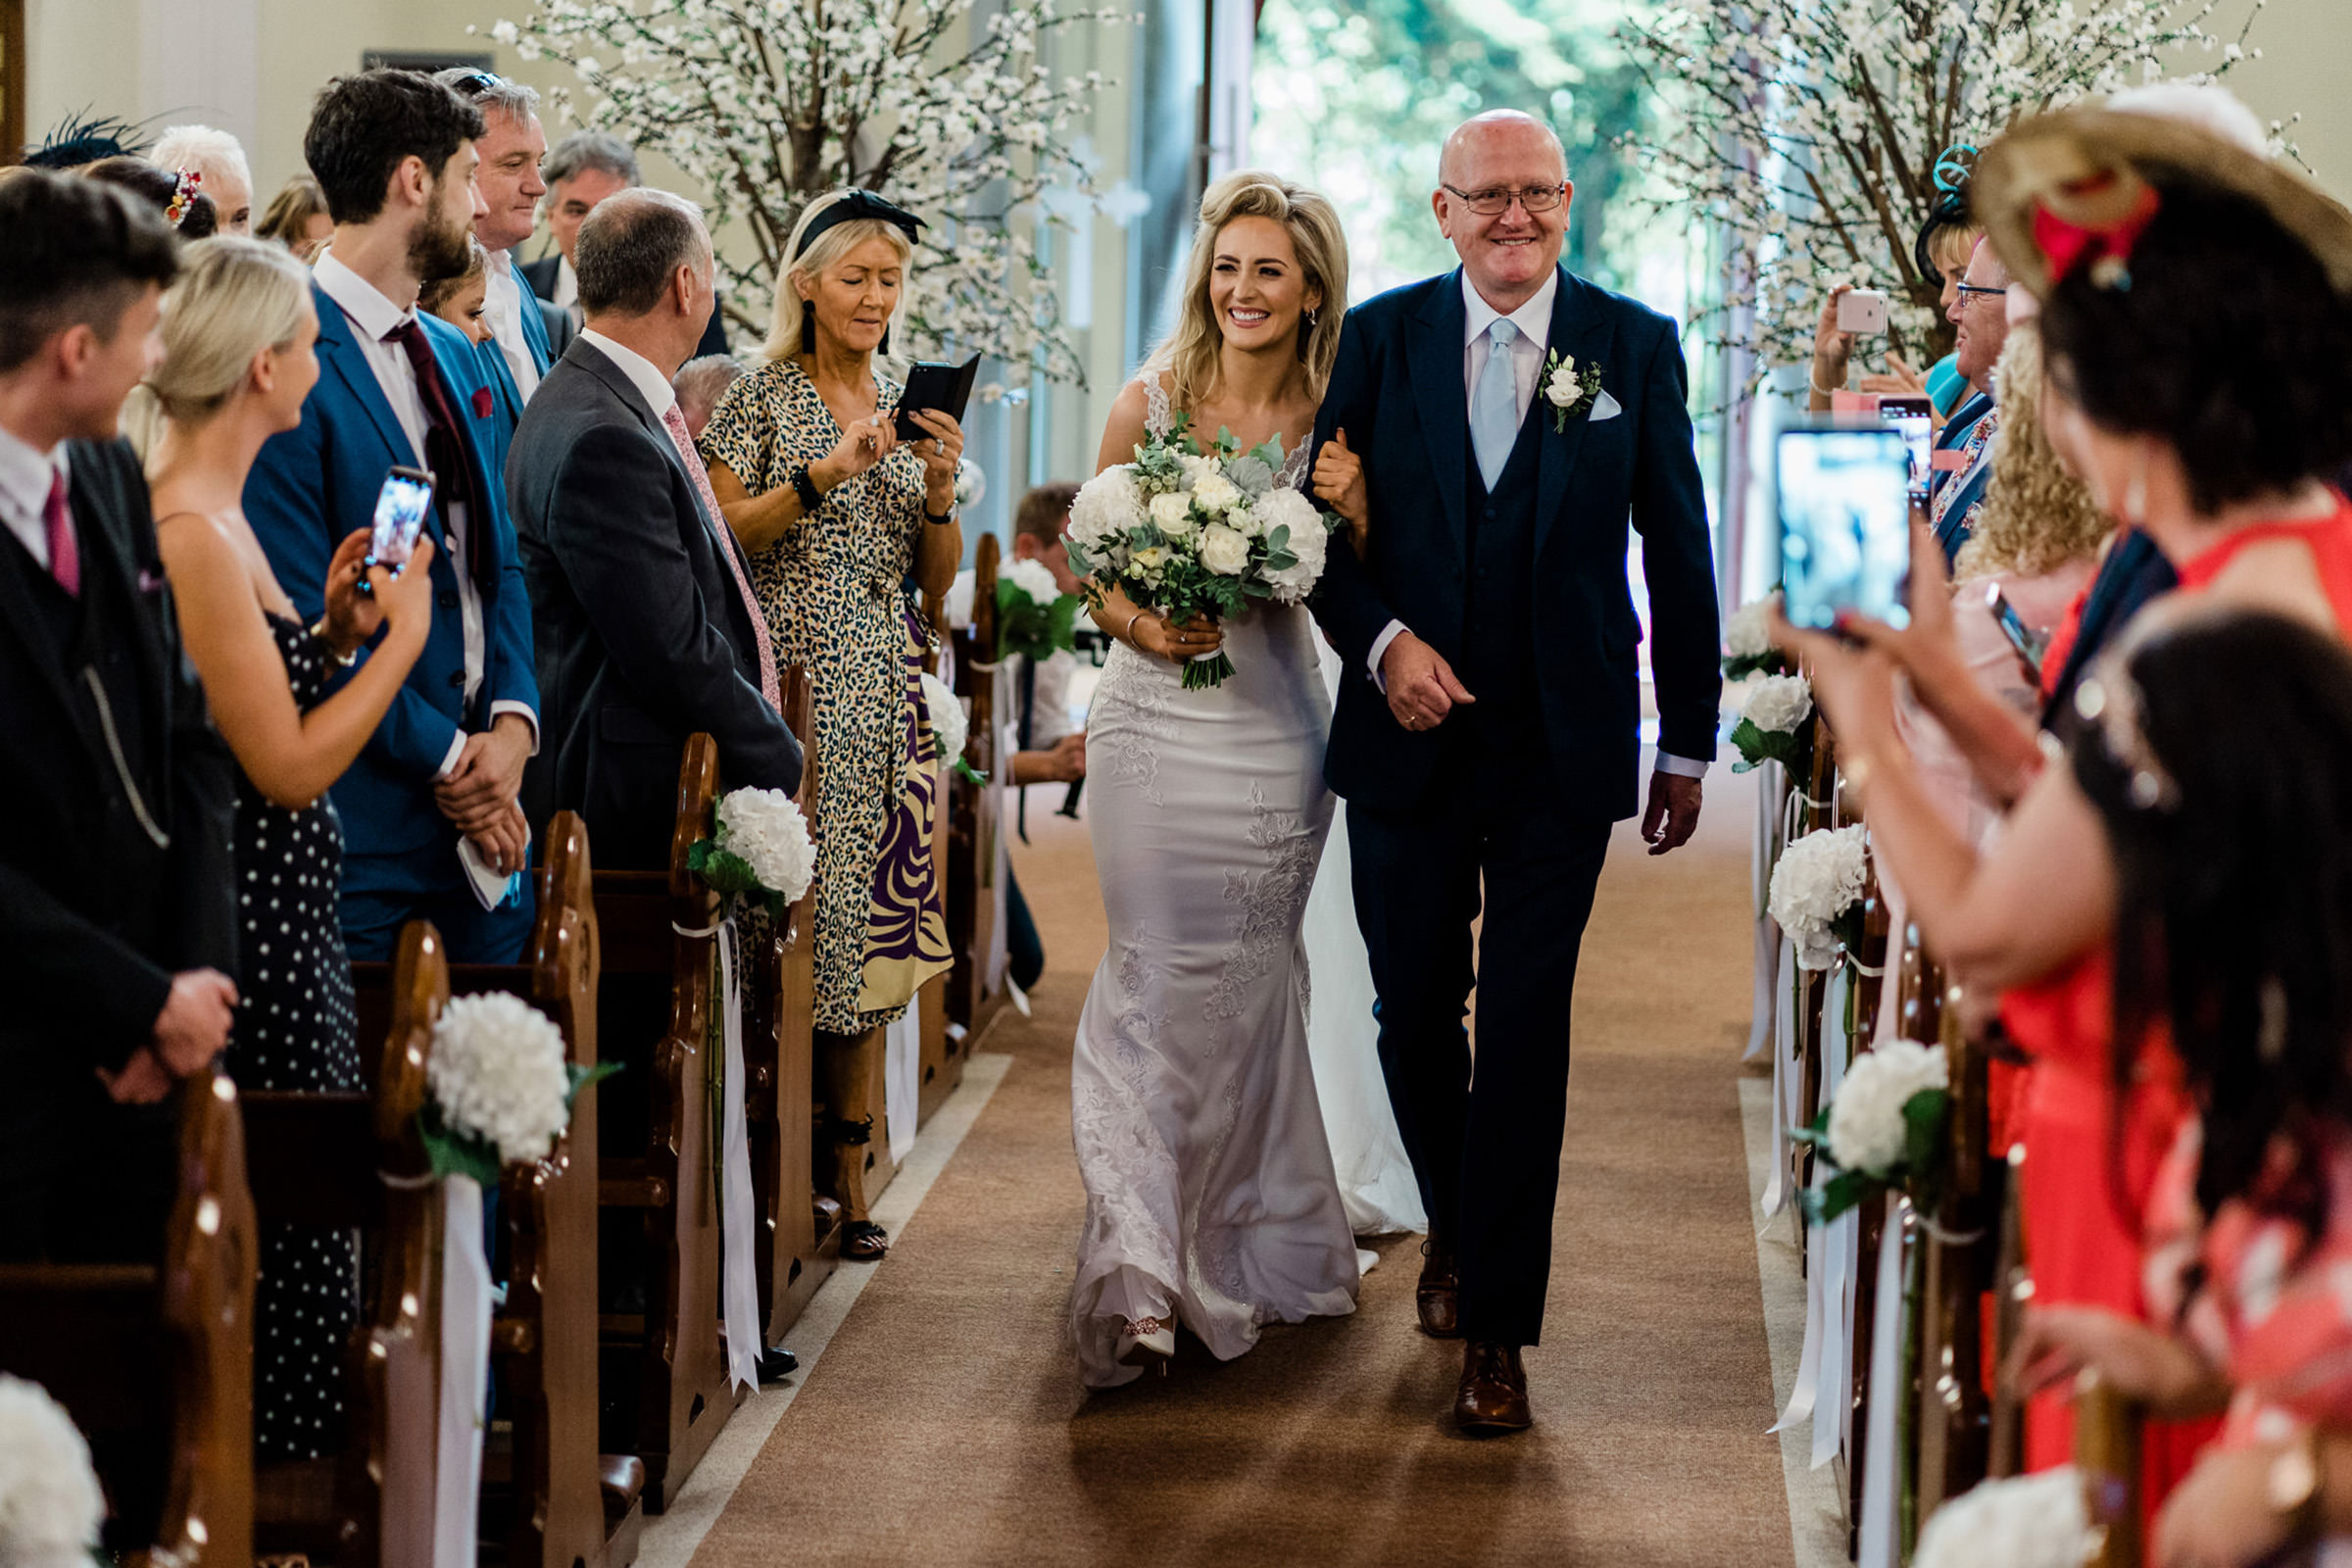 Bride walking down aisle with father - photo by The Portrait Rooms